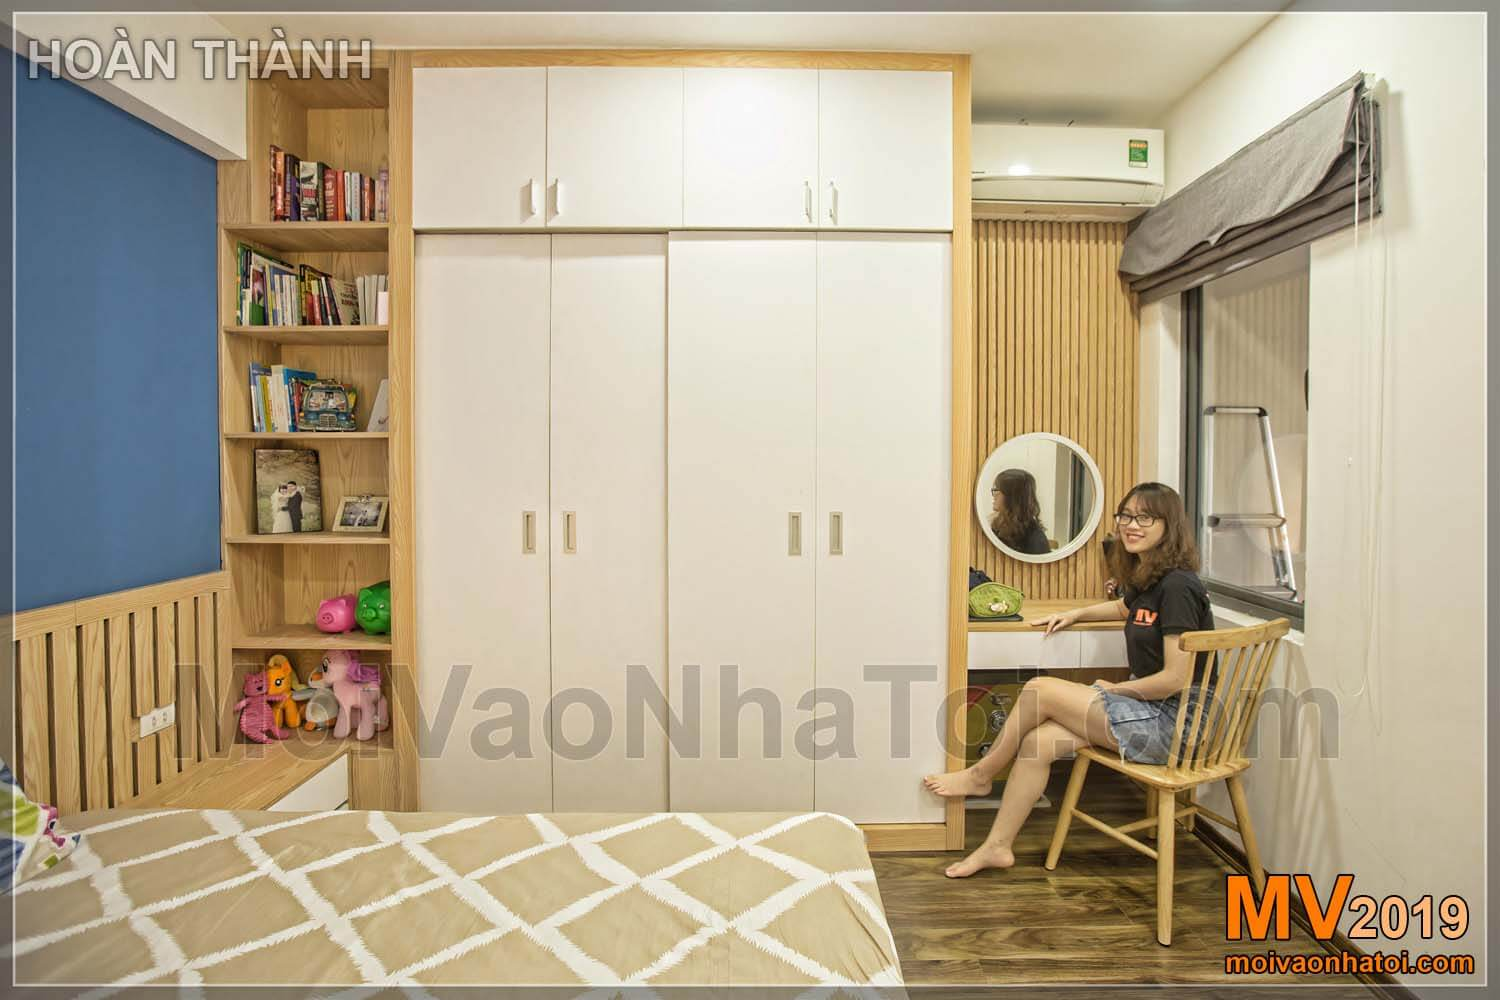 Wardrobe and dressing table to design Linh Dam apartment building of 80m2